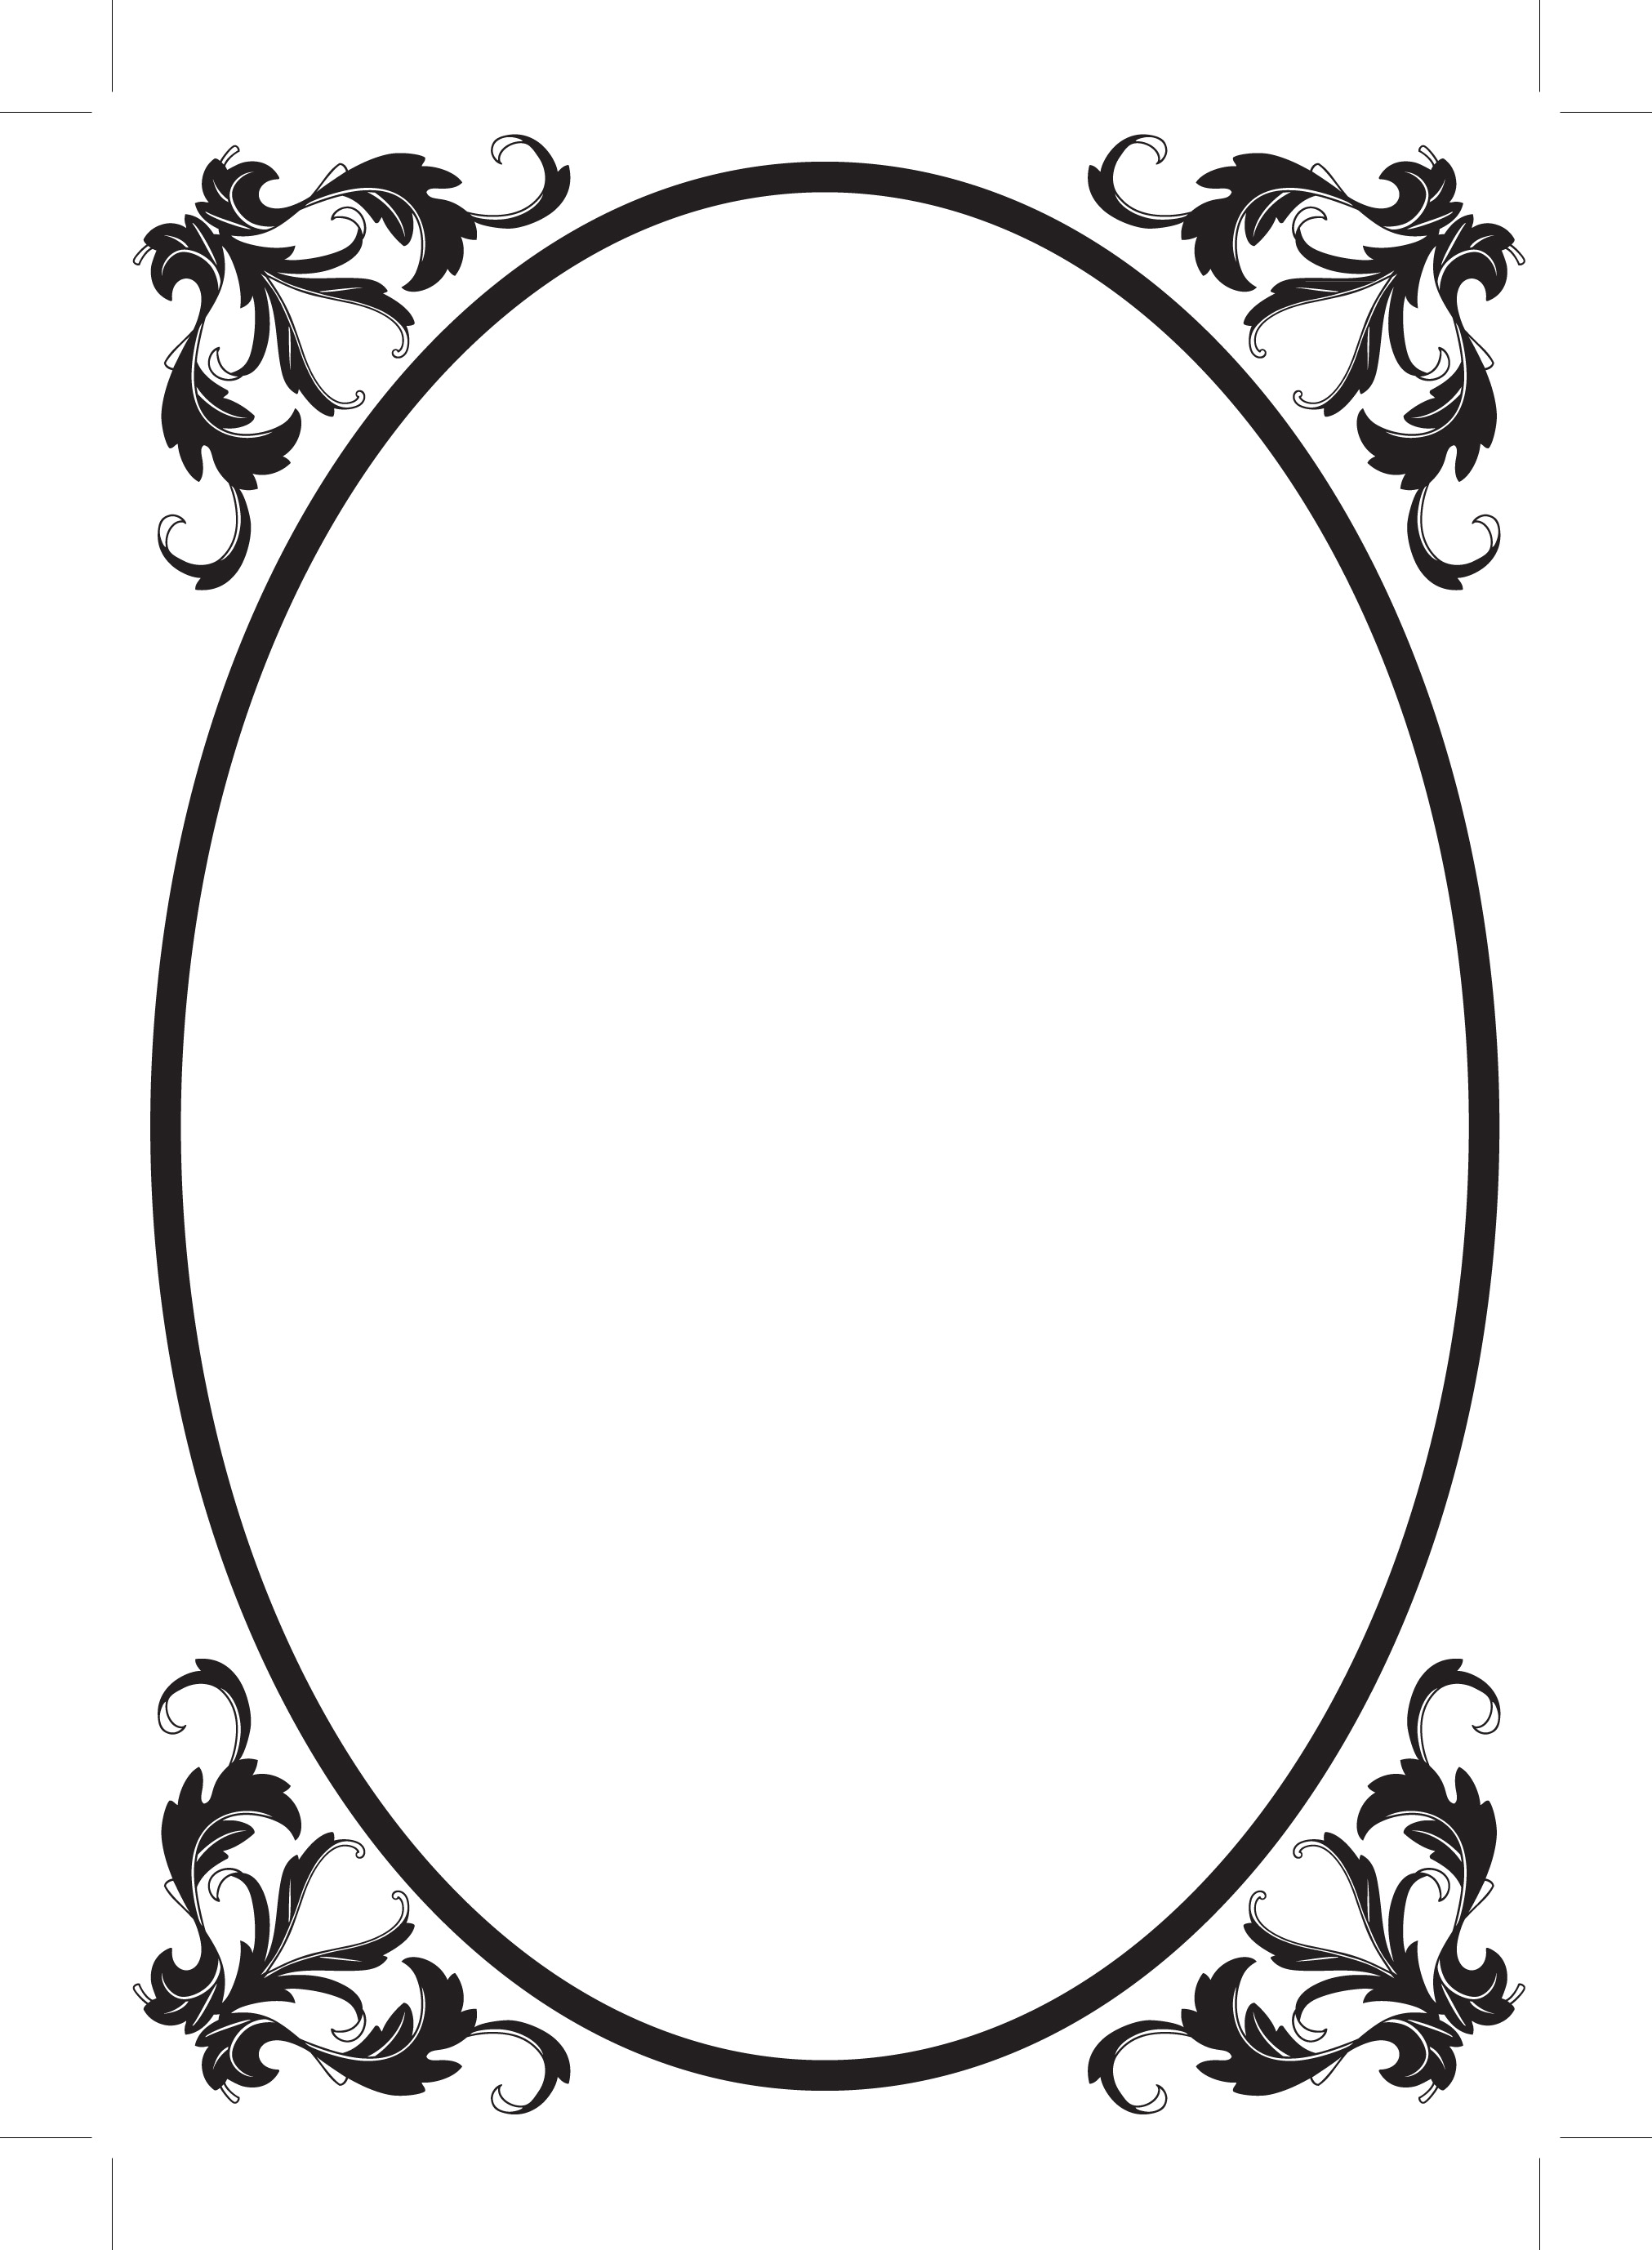 Western Frame Clipart | Free download best Western Frame Clipart on ...